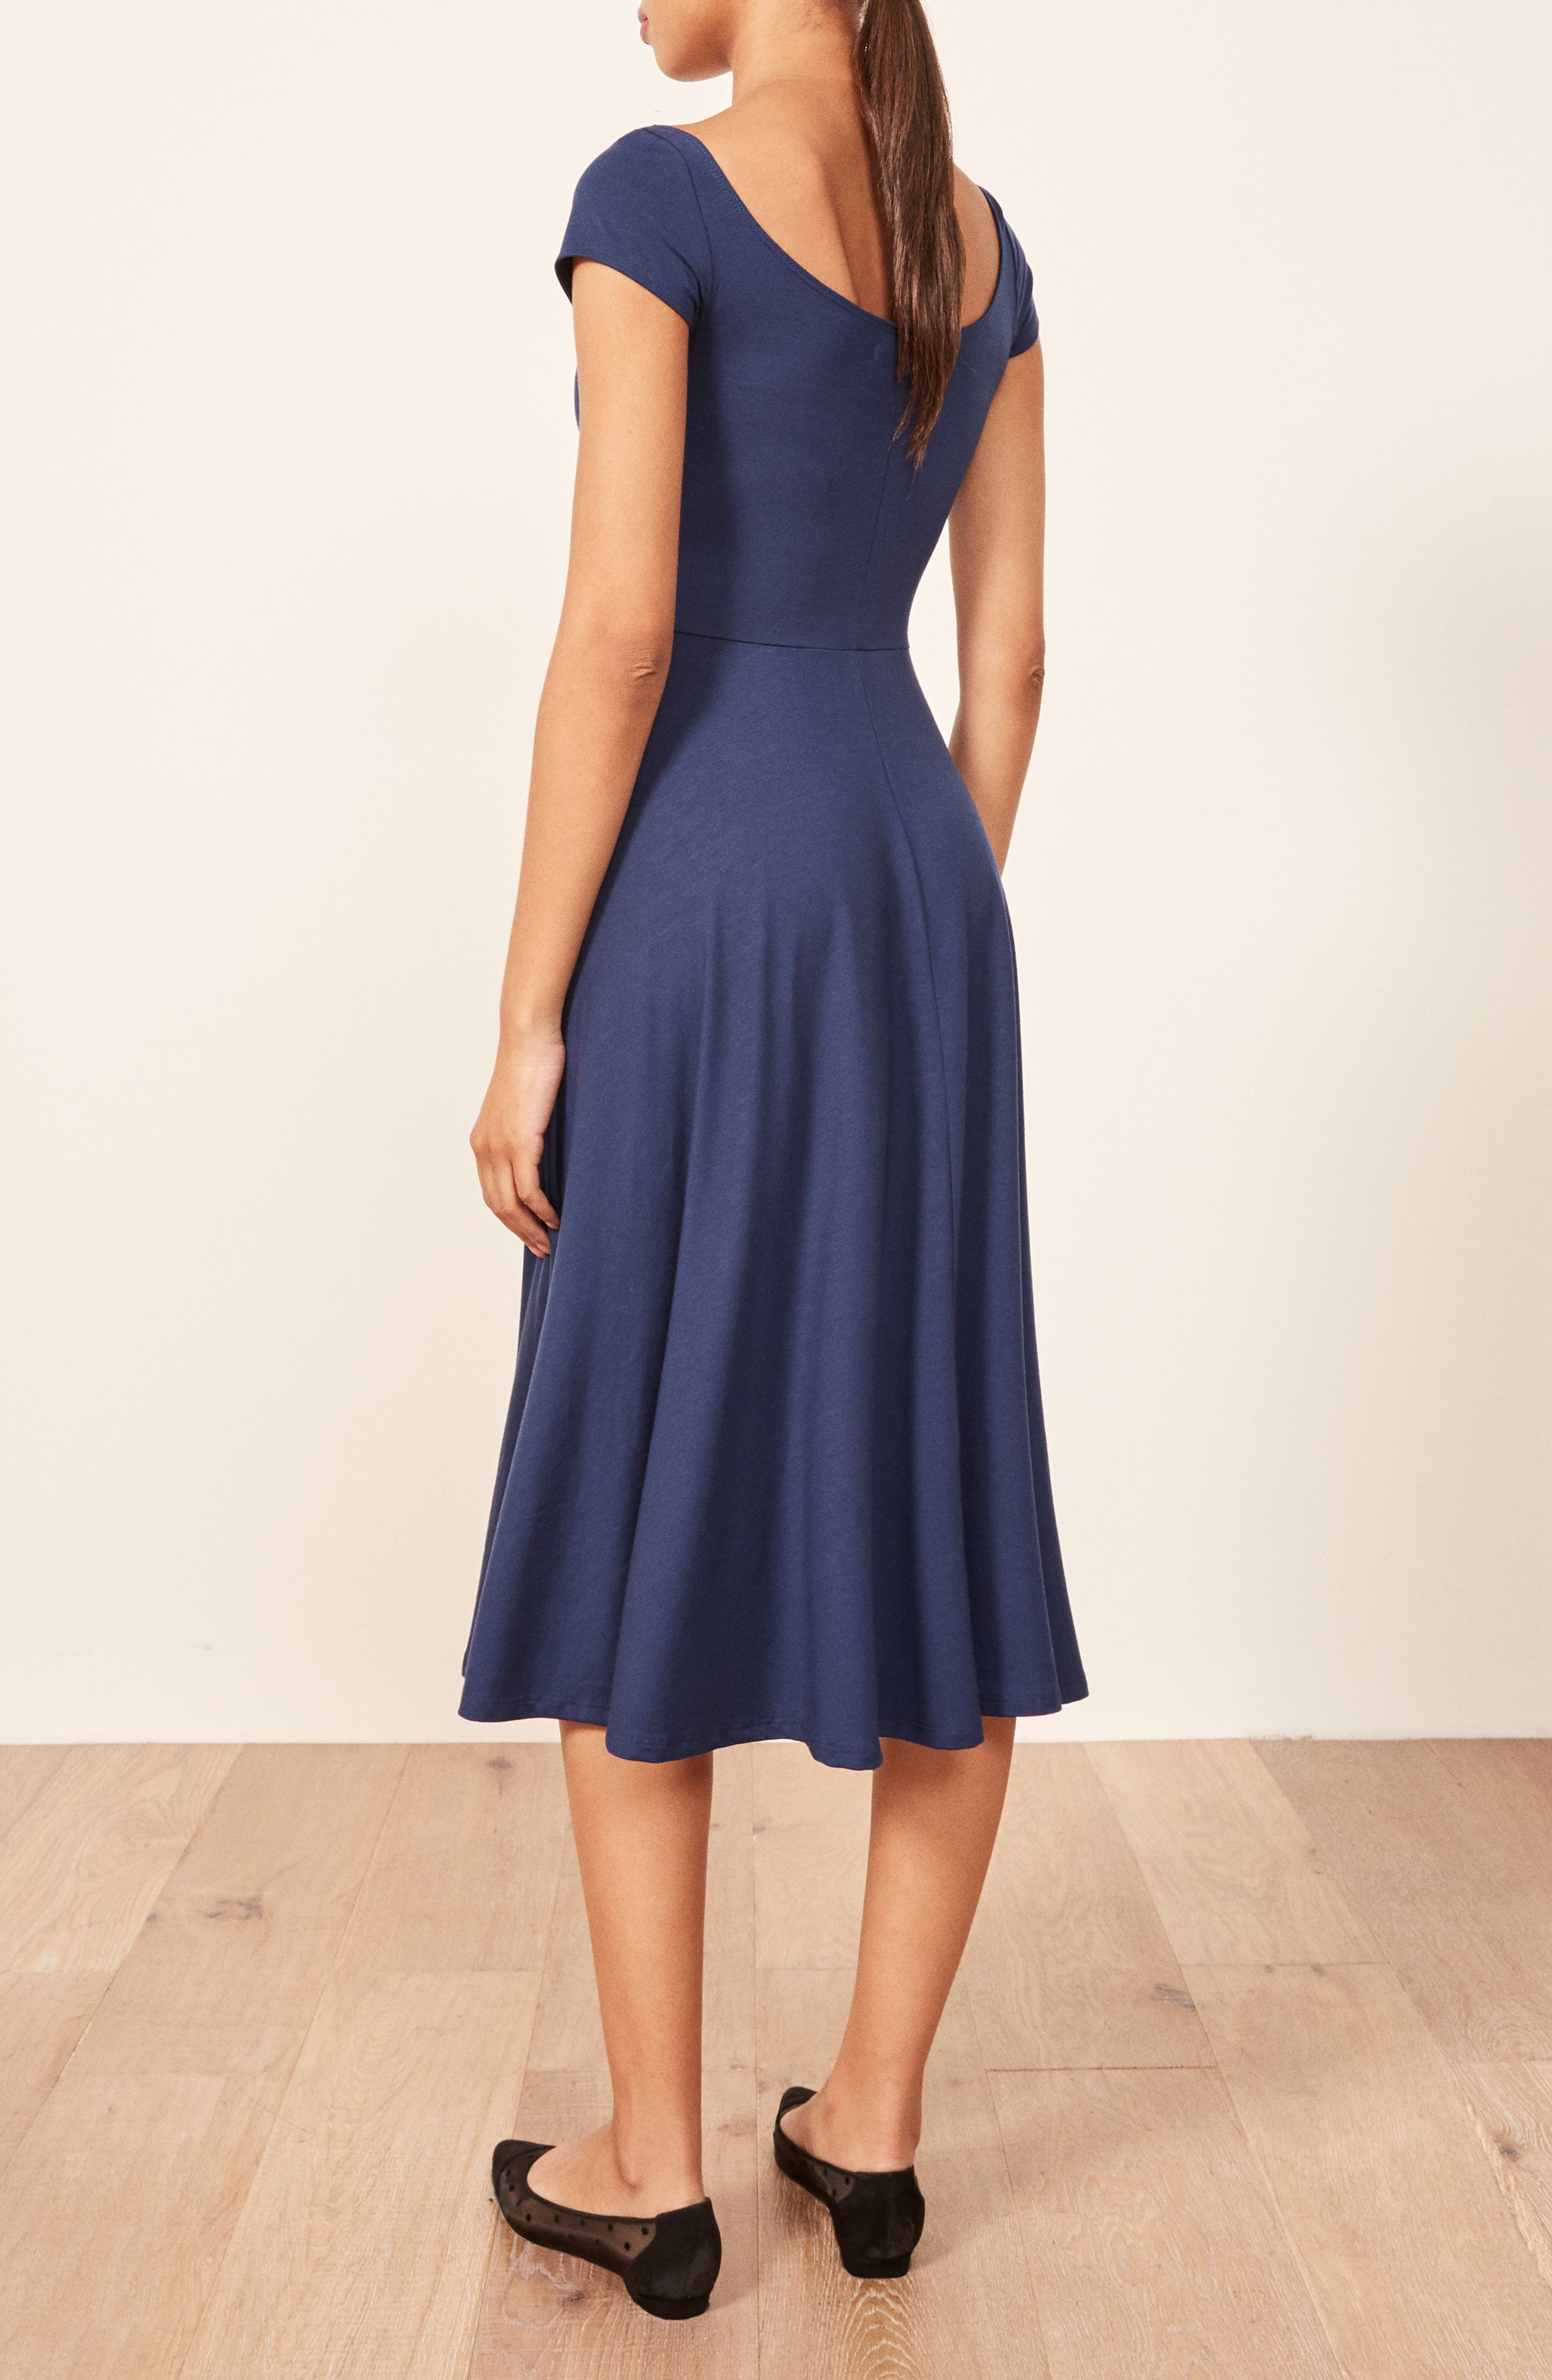 Krista Dress,                             Alternate thumbnail 2, color,                             NAVY